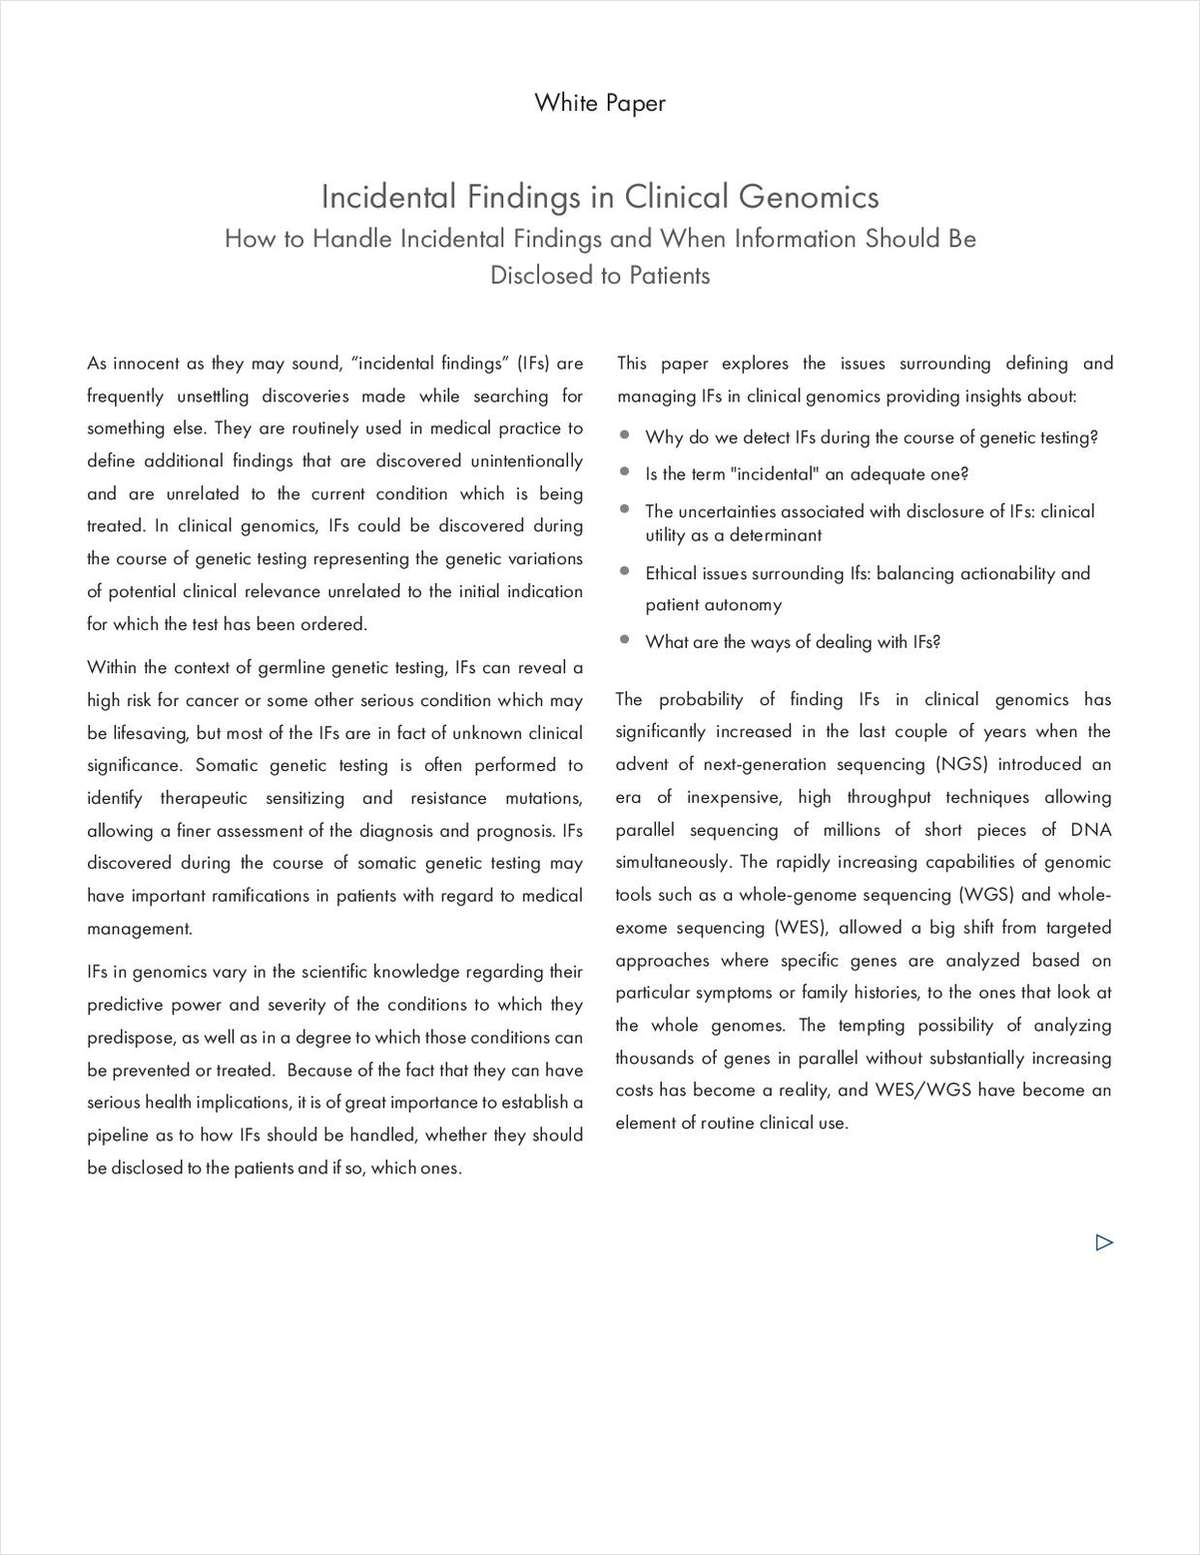 Incidental Findings in Clinical Genomics: How to Handle Incidental Findings and When Information Should Be Disclosed to Patients